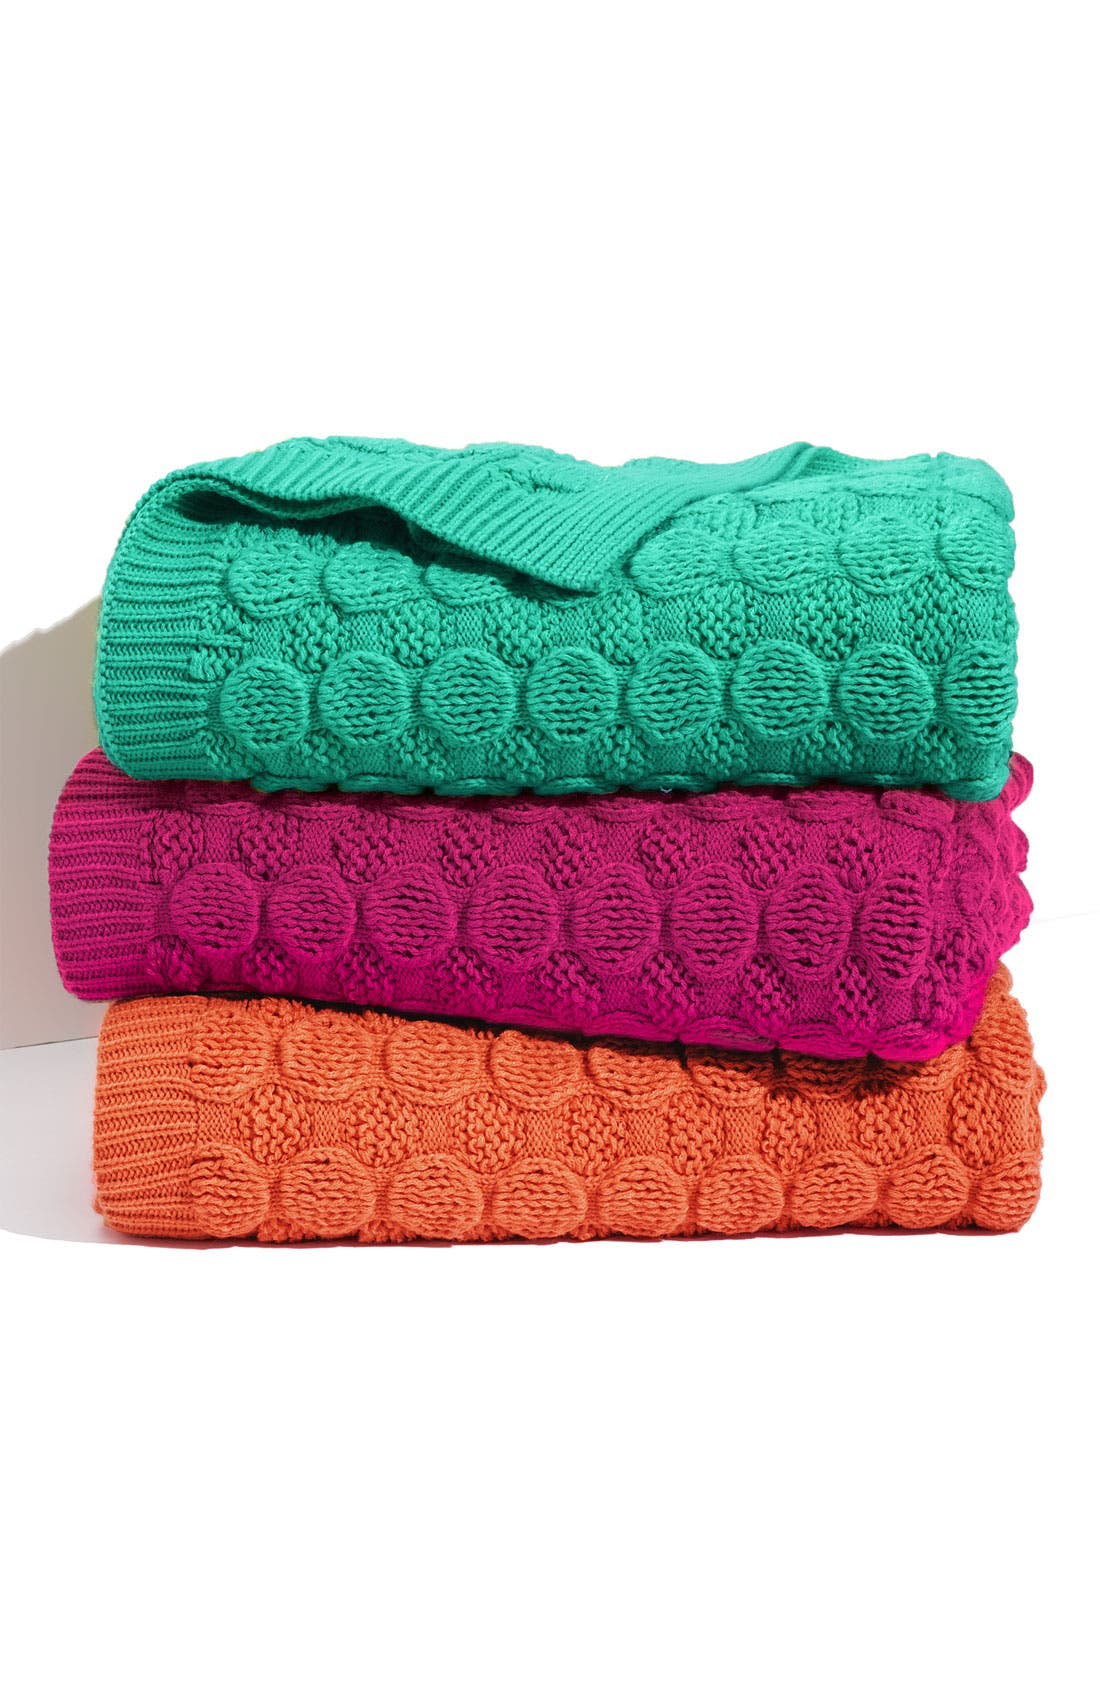 'Bubble Wrap' Knit Throw, Main, color, 401